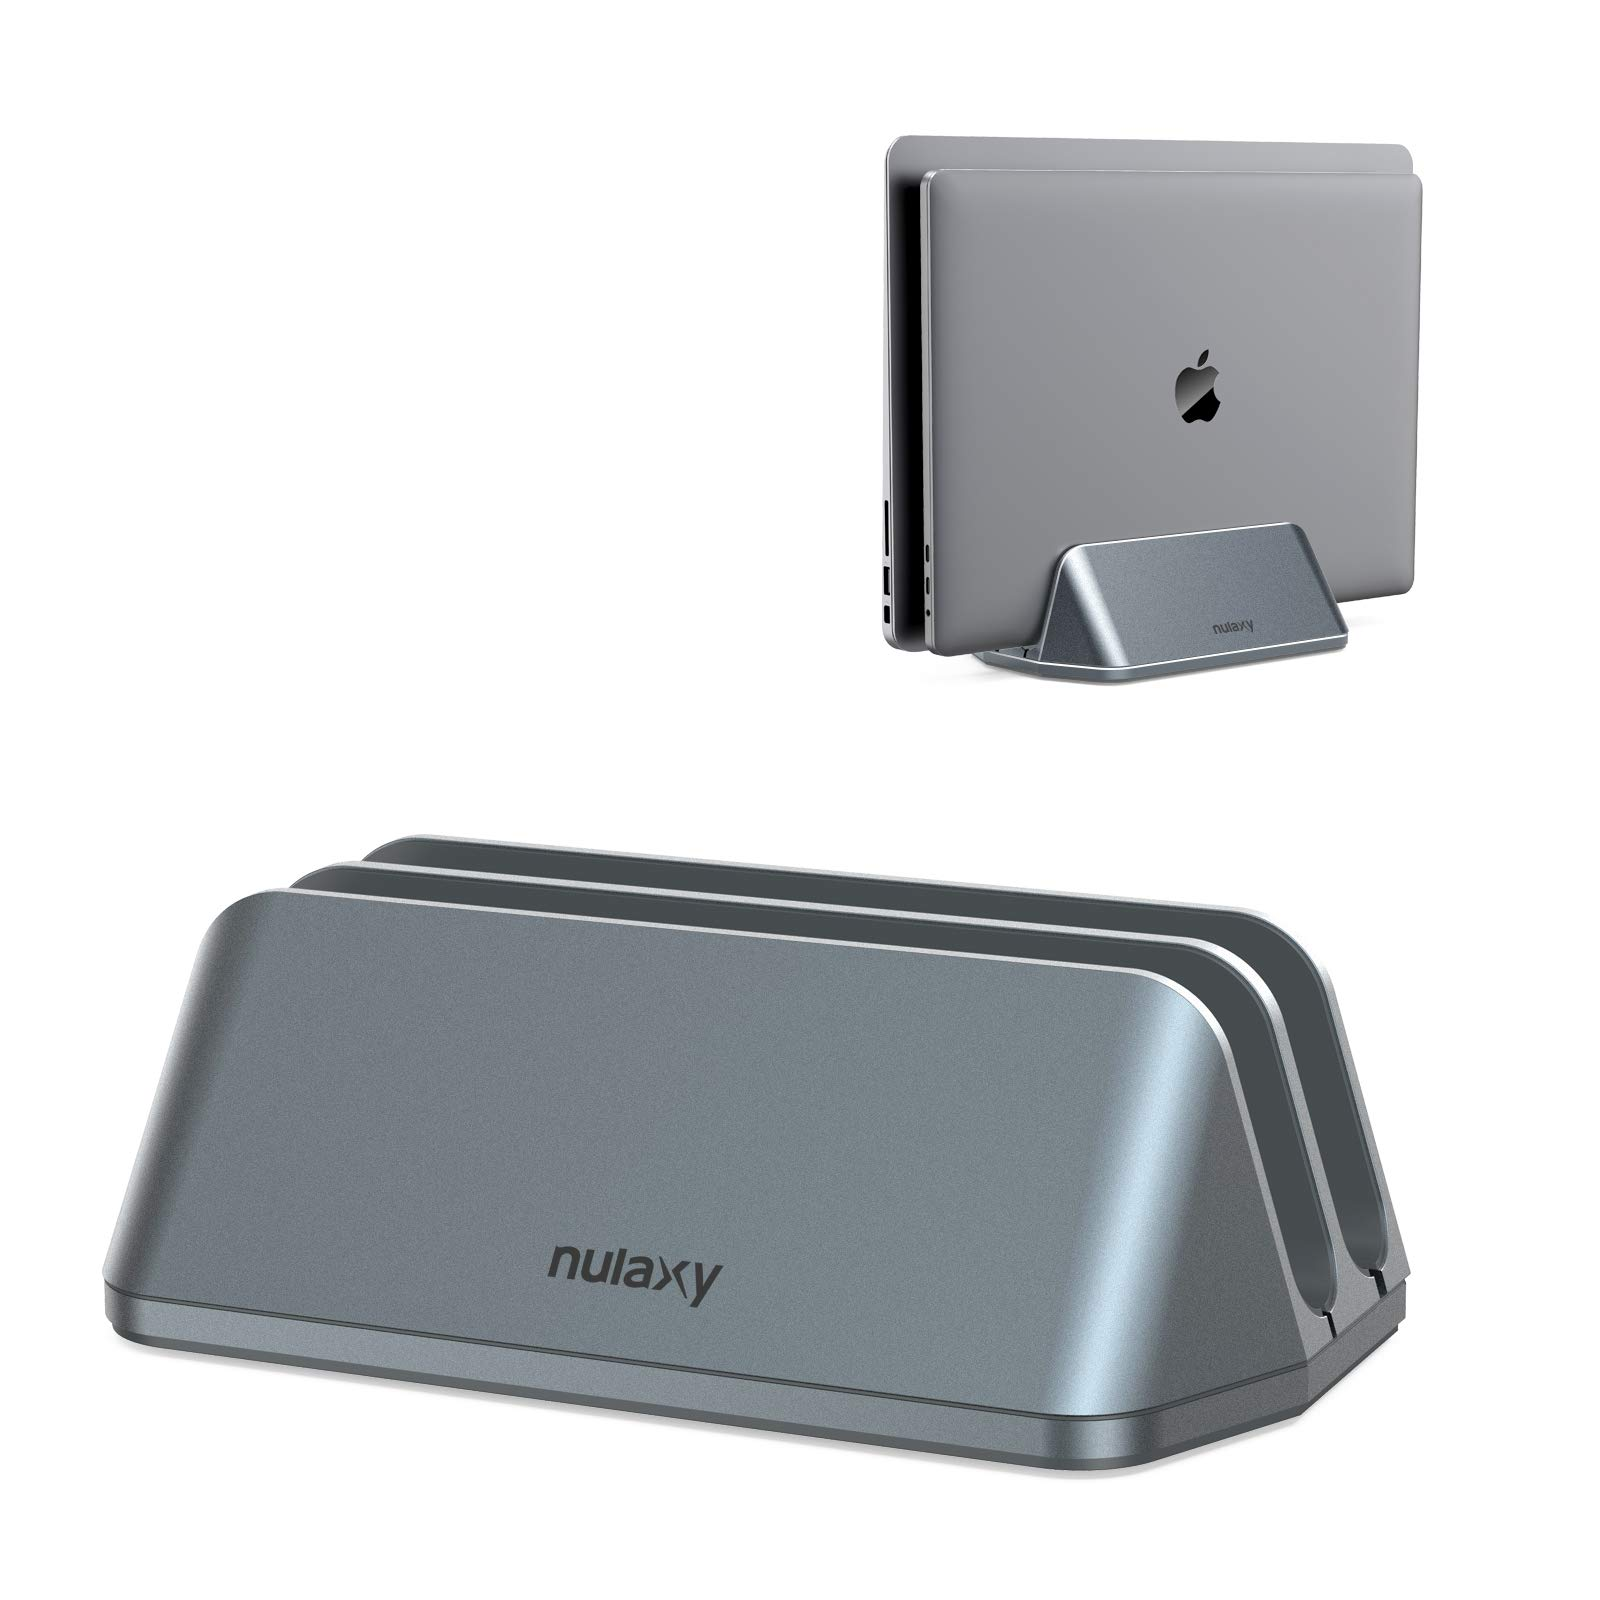 Nulaxy Vertical Laptop Stand, Double Desktop Stand Holder with Adjustable Dock, 2 Slots Aluminum Notebook Vertical Stand Compatible with All Laptops/Notebooks (up to 17.3 inches)-Grey